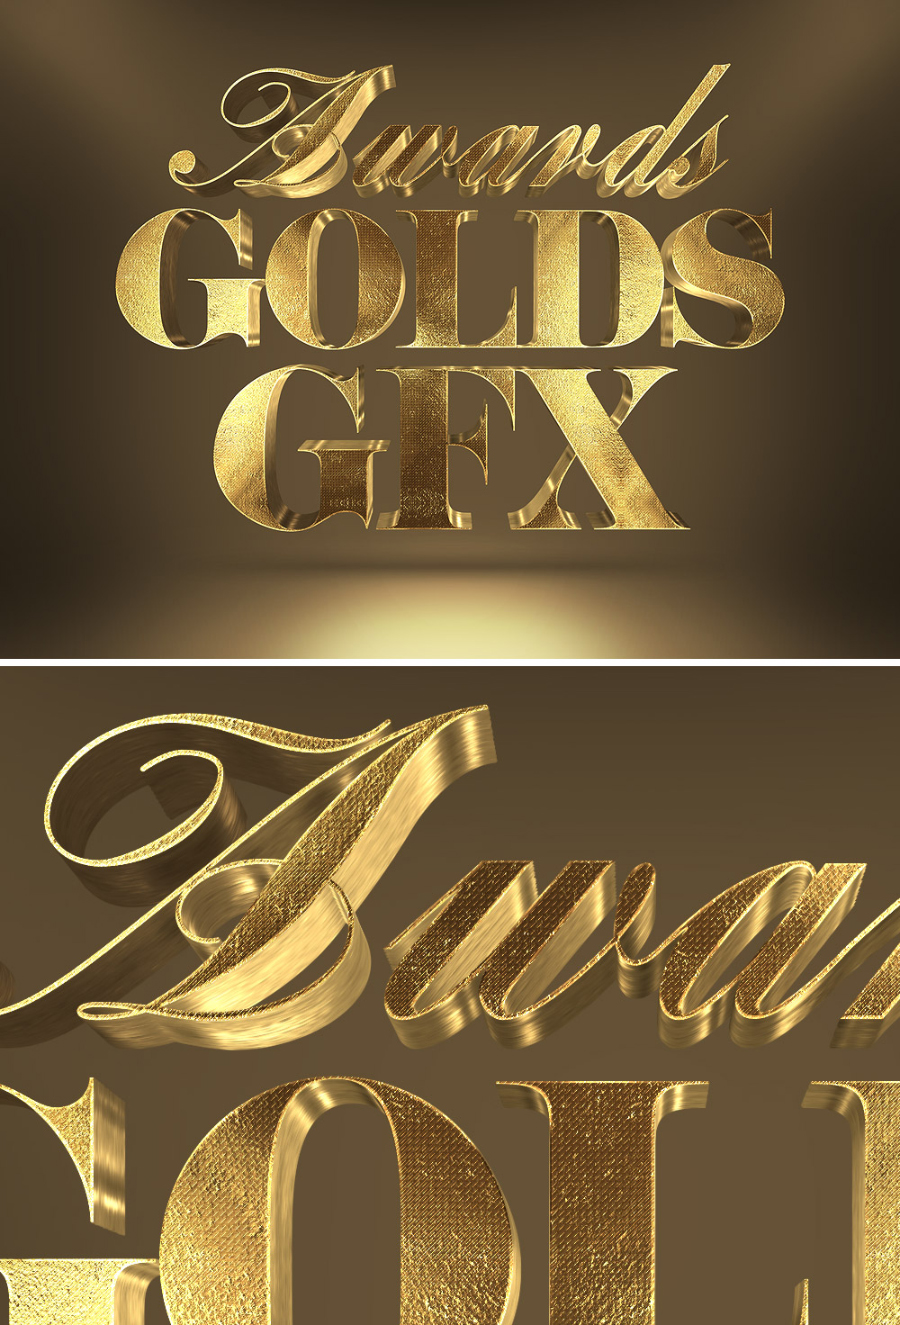 Free 3d gold text effect free design resources for Architect 3d gold